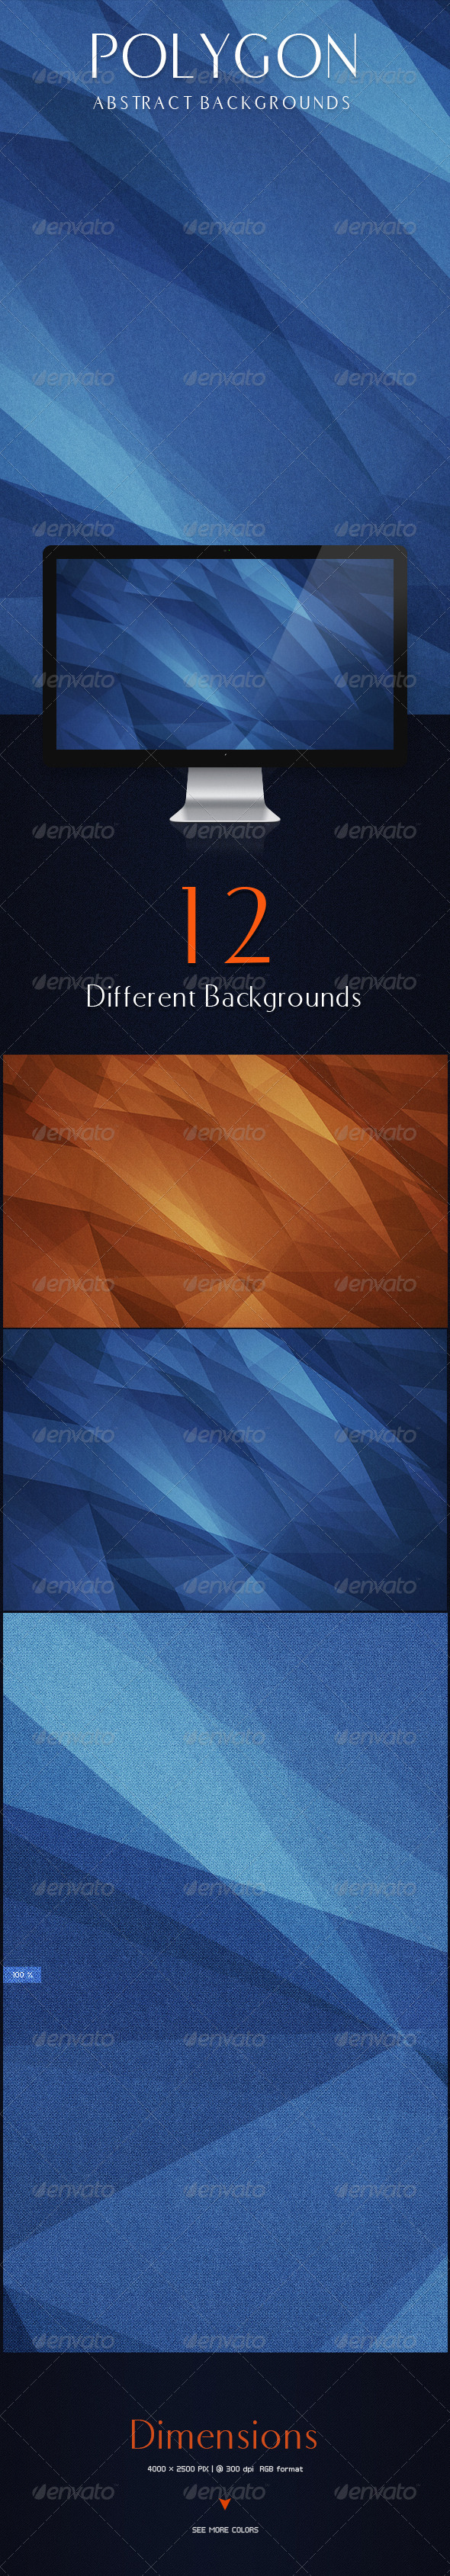 GraphicRiver Polygon Abstract Backgrounds 8682747